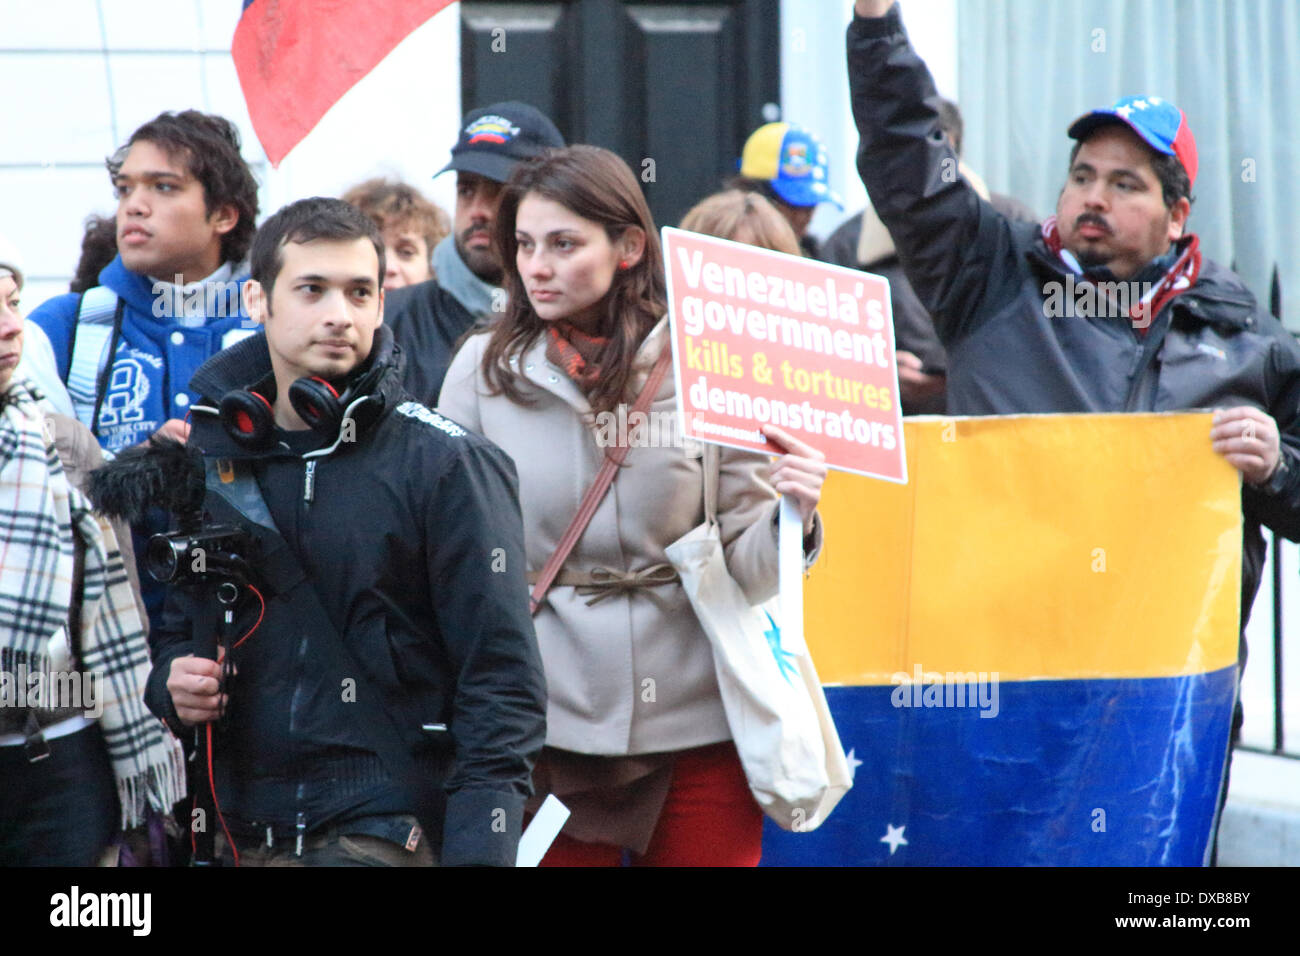 London, UK. 22nd Mar, 2014. The justice4venezuela campaign seeks to put international pressure on the government of Nicolás Maduro to ensure that human rights are respected in Venezuela. © Ashok Saxena/Alamy Live News - Stock Image